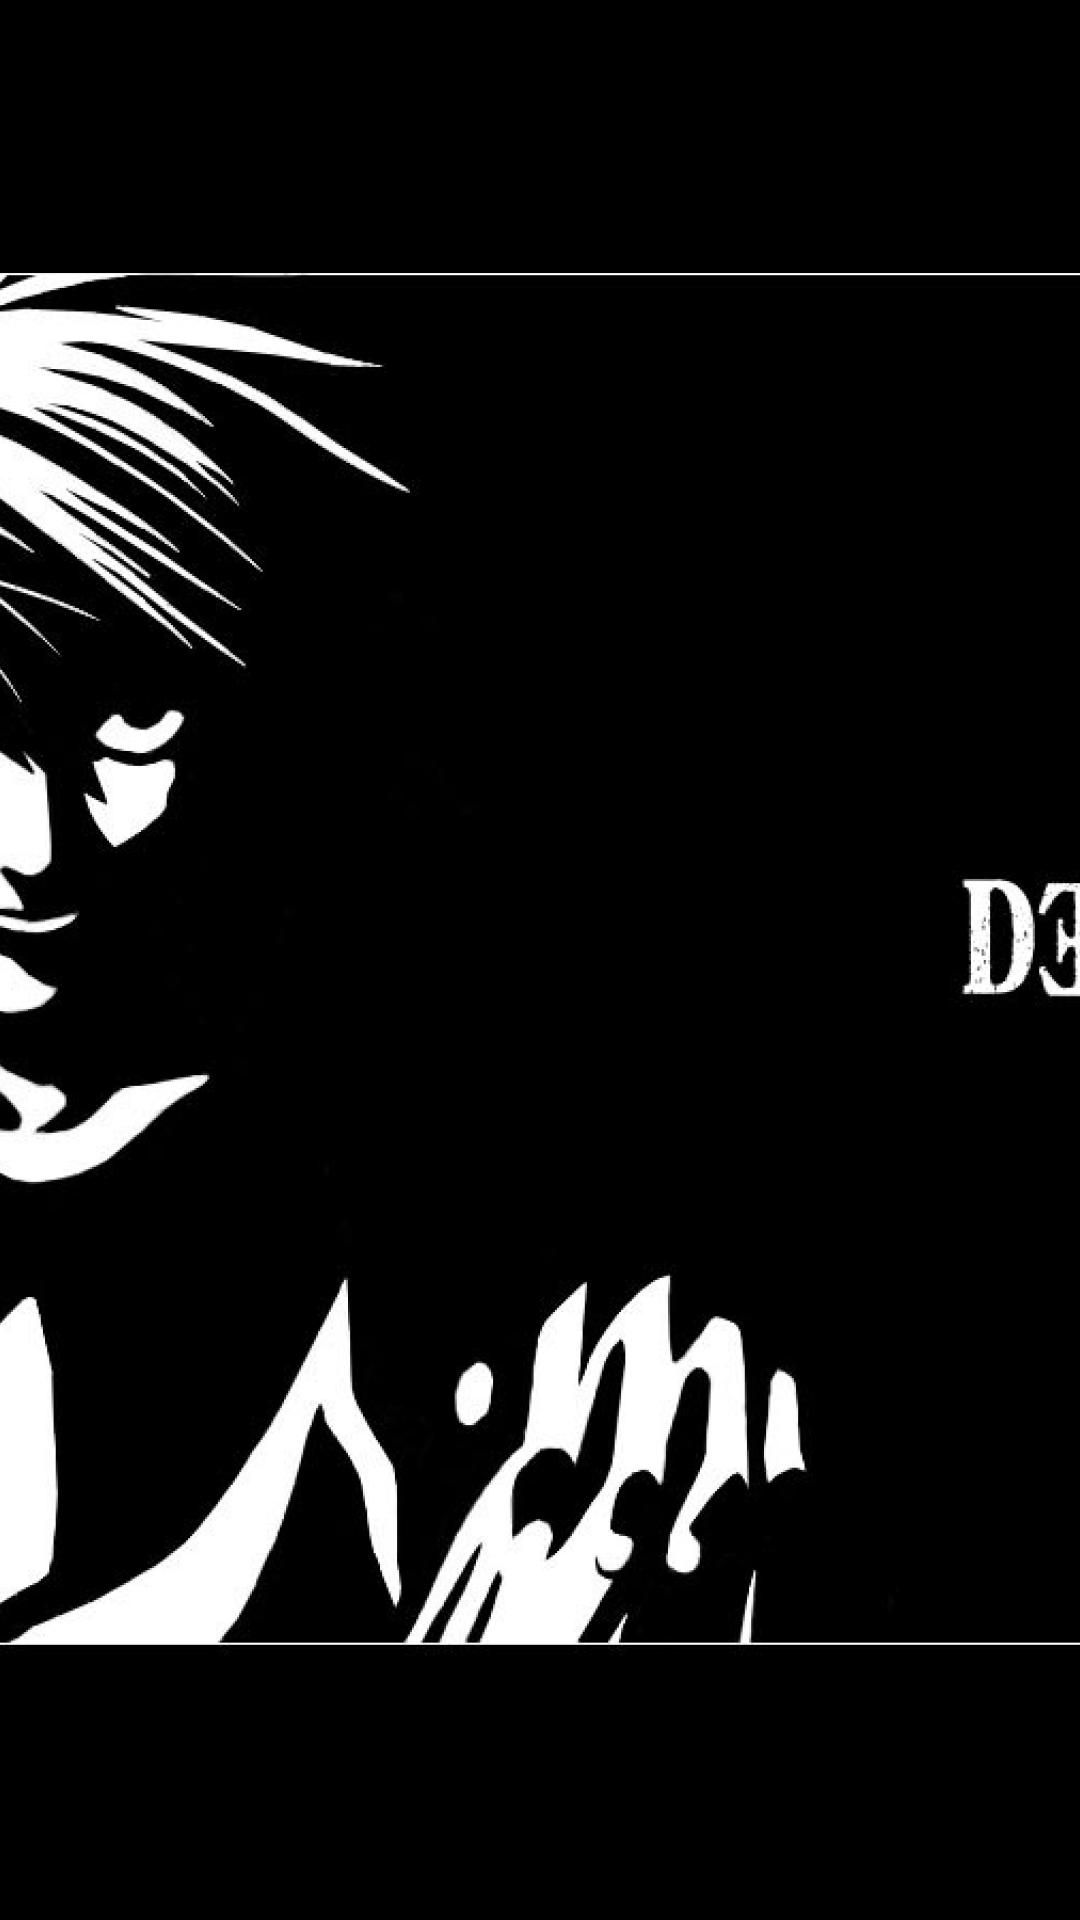 1080x1920 ScreenHeaven: Death Note L black and white illustrations desktop and ...